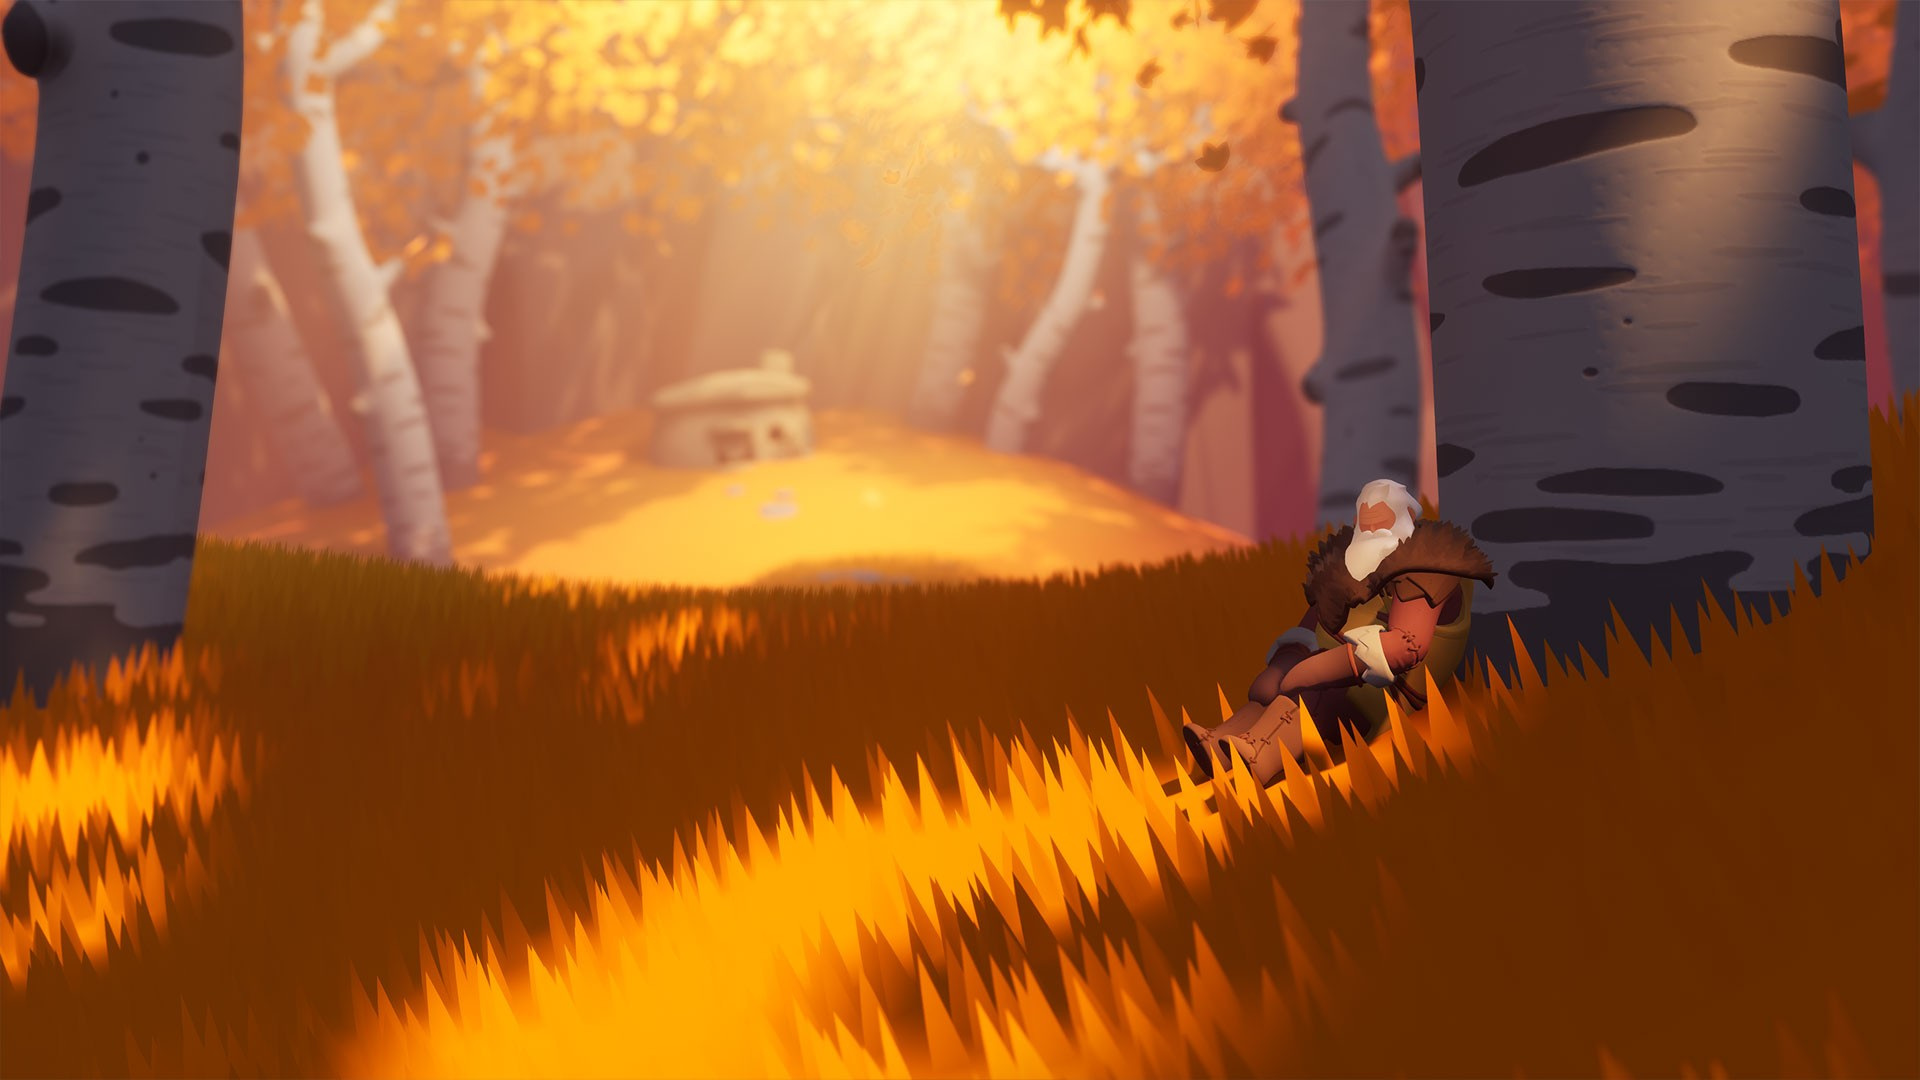 Action, adventure, Arise: A Simple Story, Arise: A Simple Story Review, Family, Piccolo Studio, PS4, PS4 Review, Techland